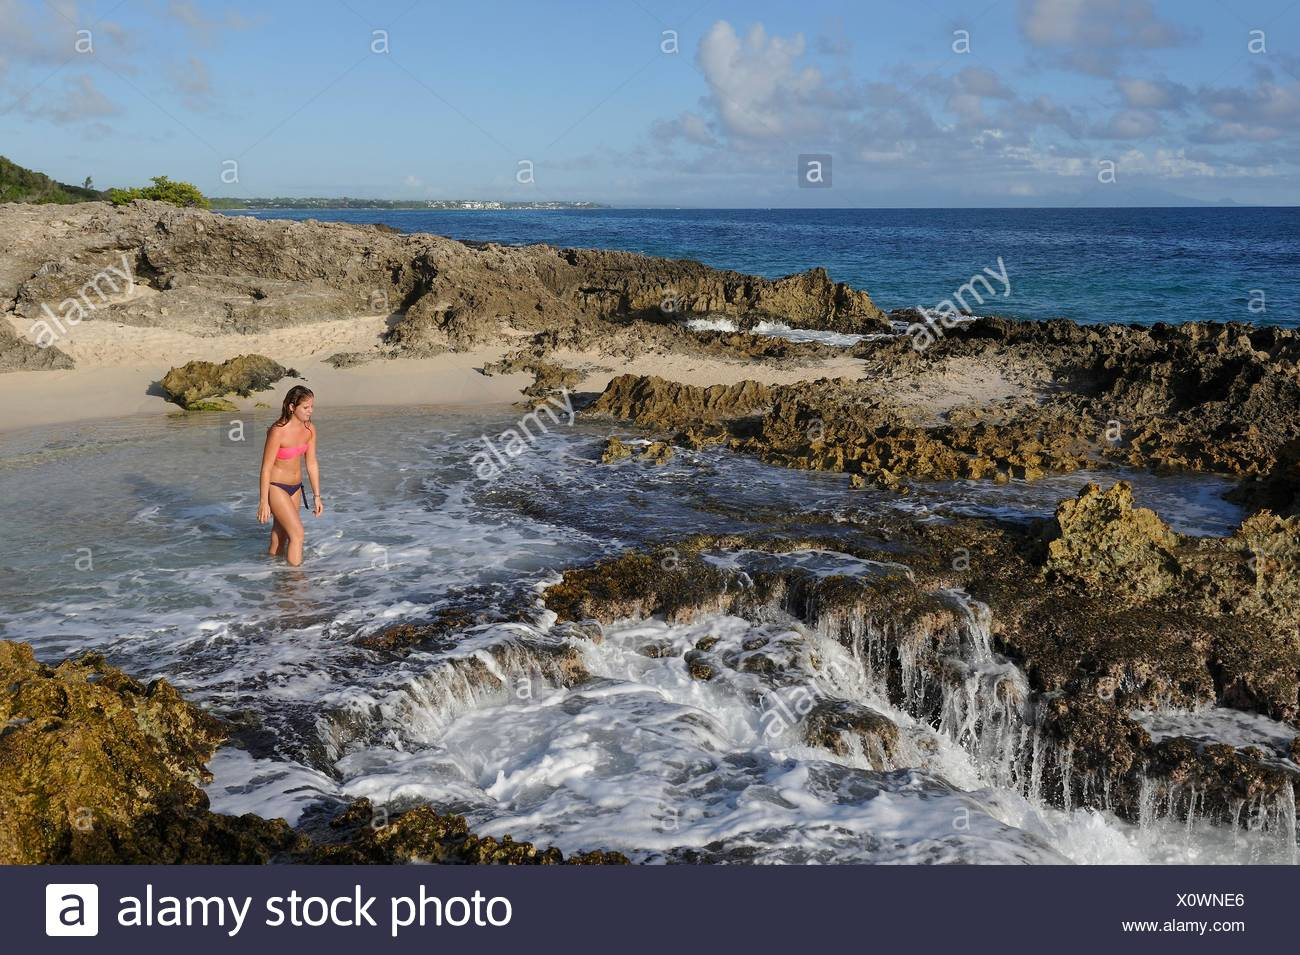 beach at Pointe des Chateaux, Grande-Terre, Guadeloupe, overseas region of France, Leewards Islands, Lesser Antilles, Caribbean. - Stock Image